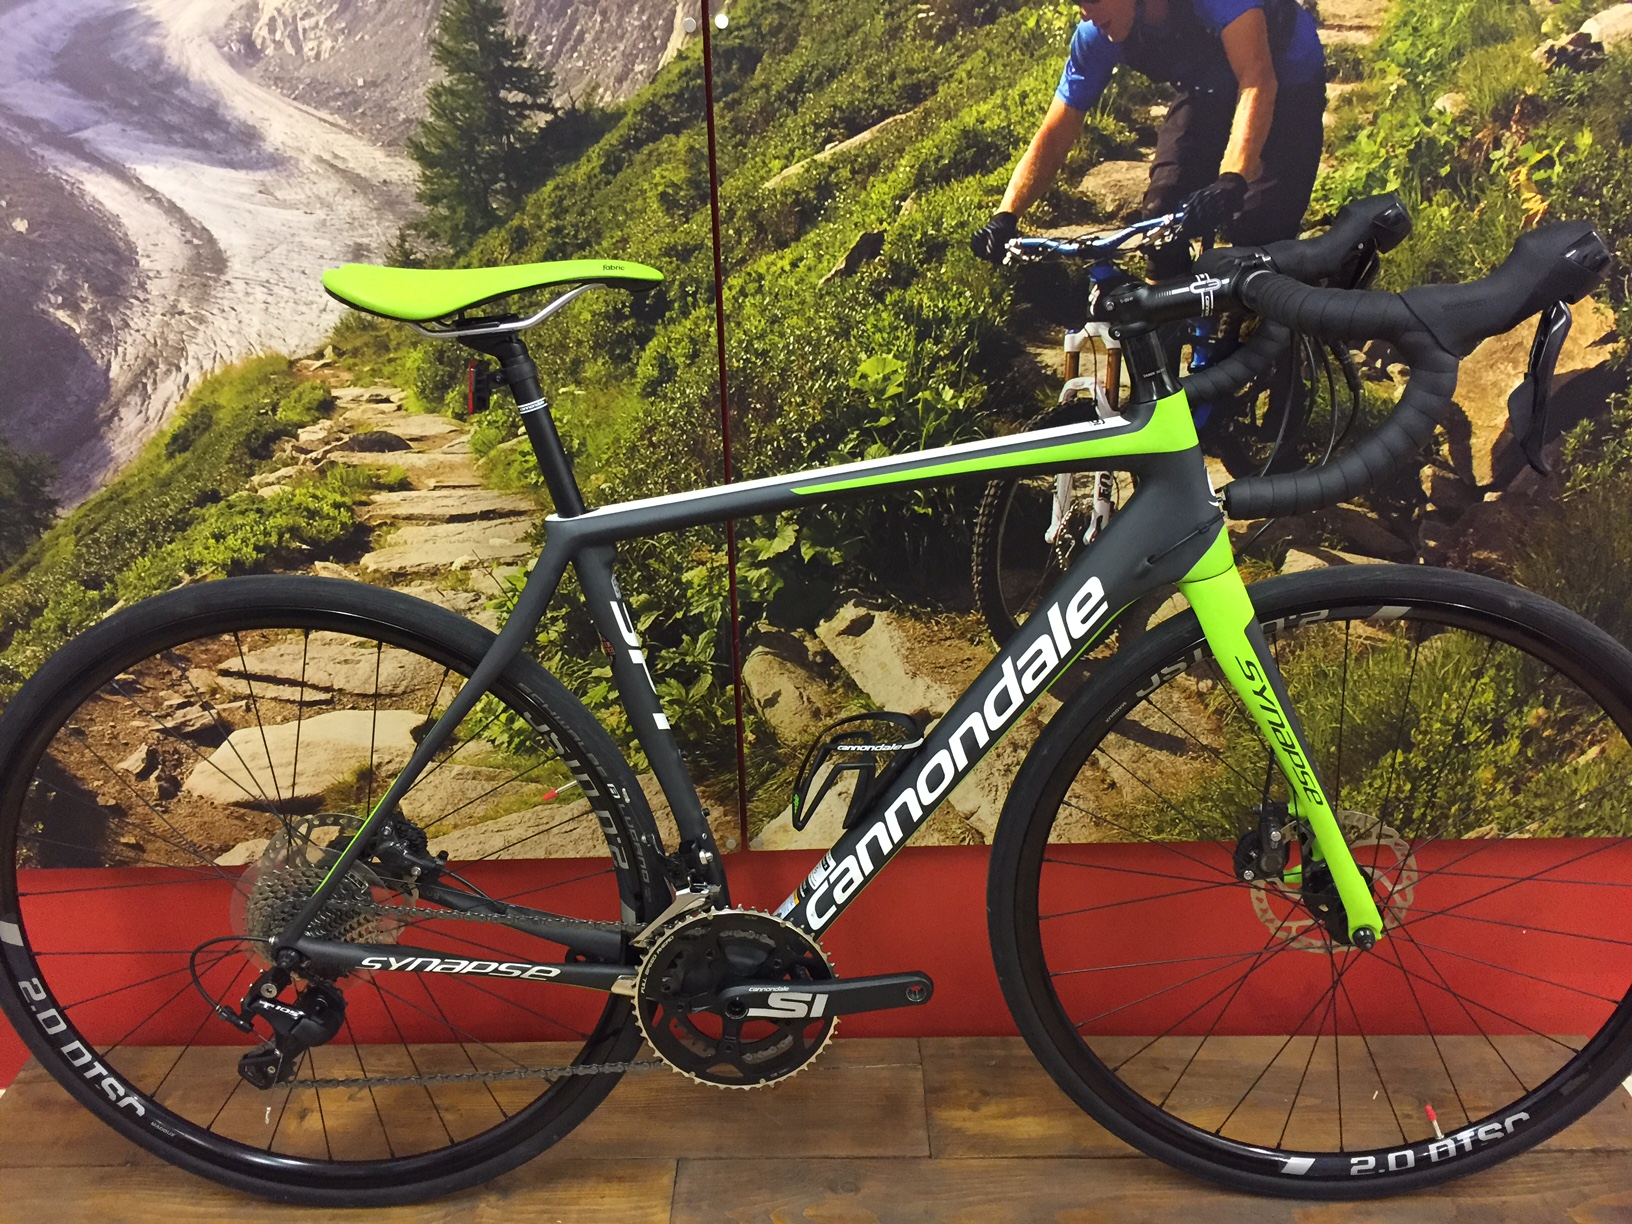 Cannondale Synapse used